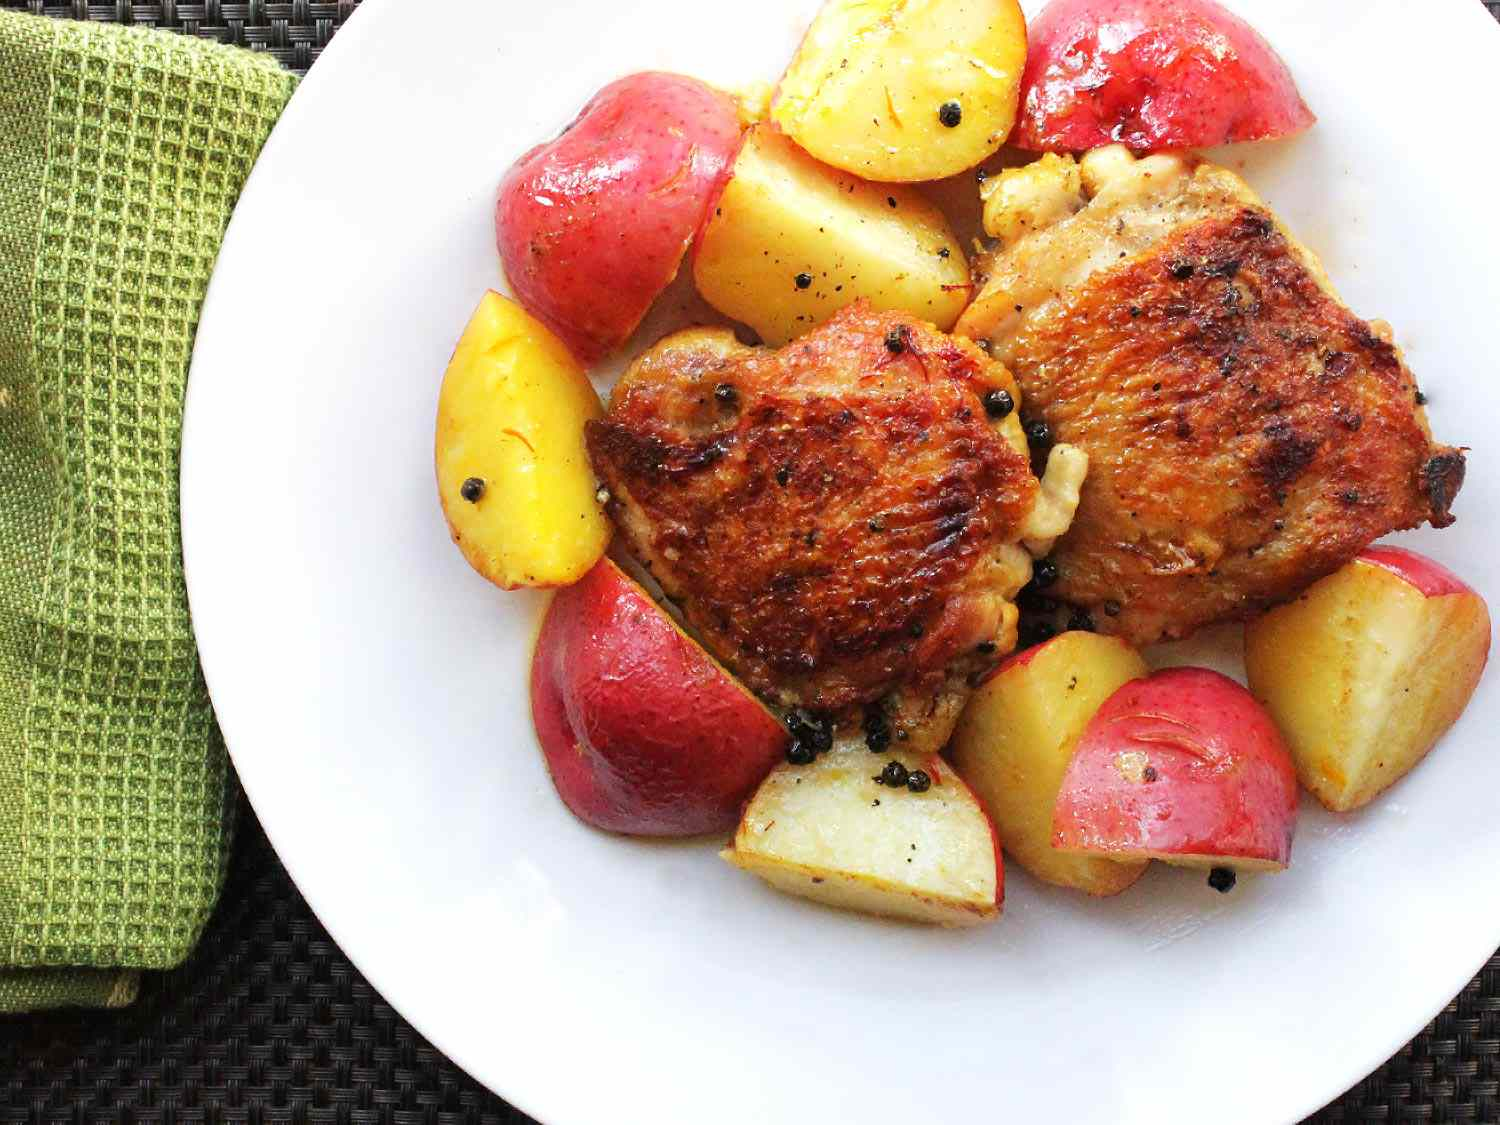 Crispy Chicken With Saffron, Lemon, and Red Potatoes